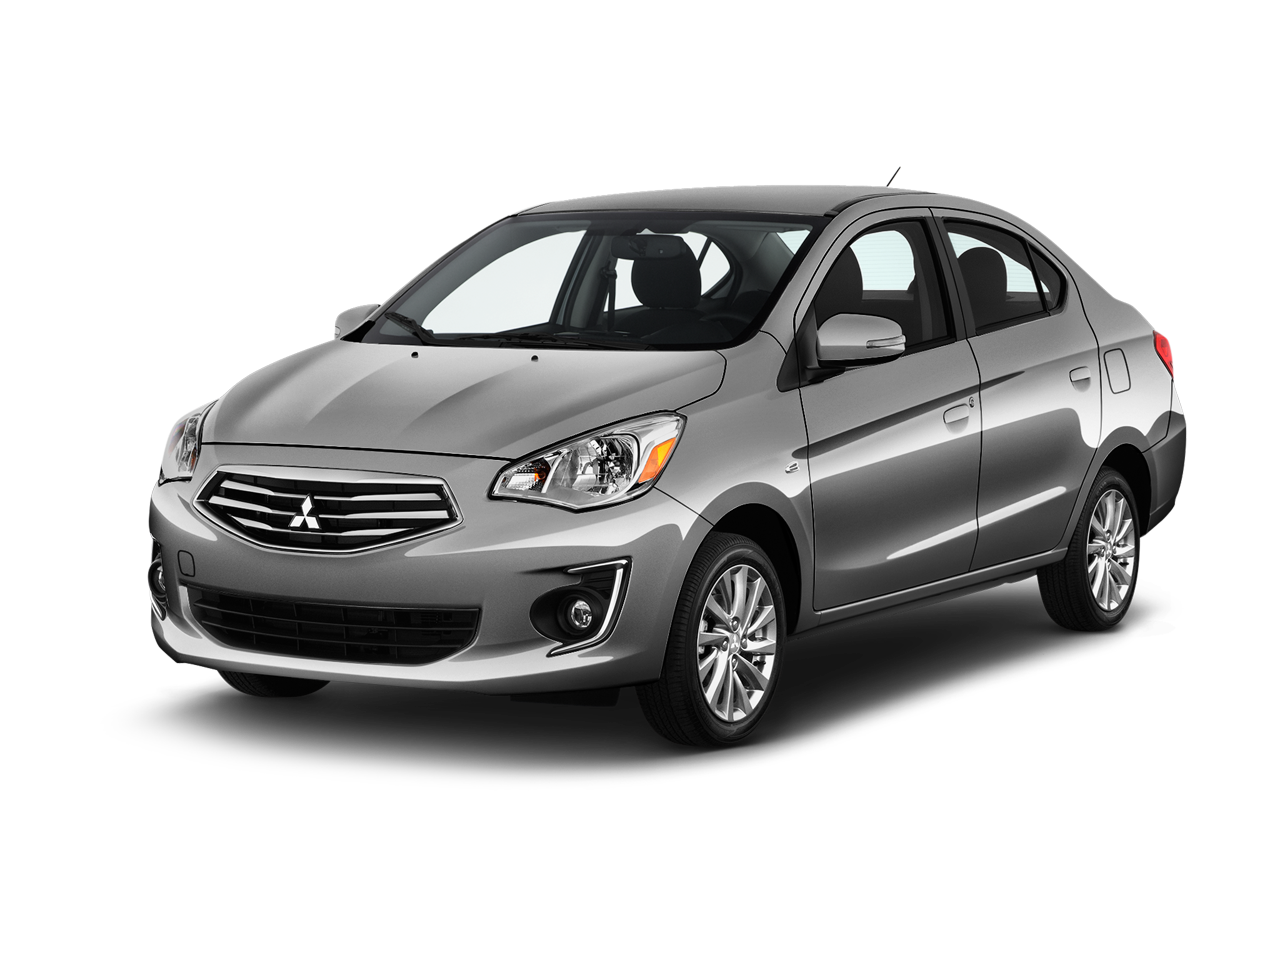 new 2017 mitsubishi mirage g4 se near waukesha wi russ darrow group. Black Bedroom Furniture Sets. Home Design Ideas